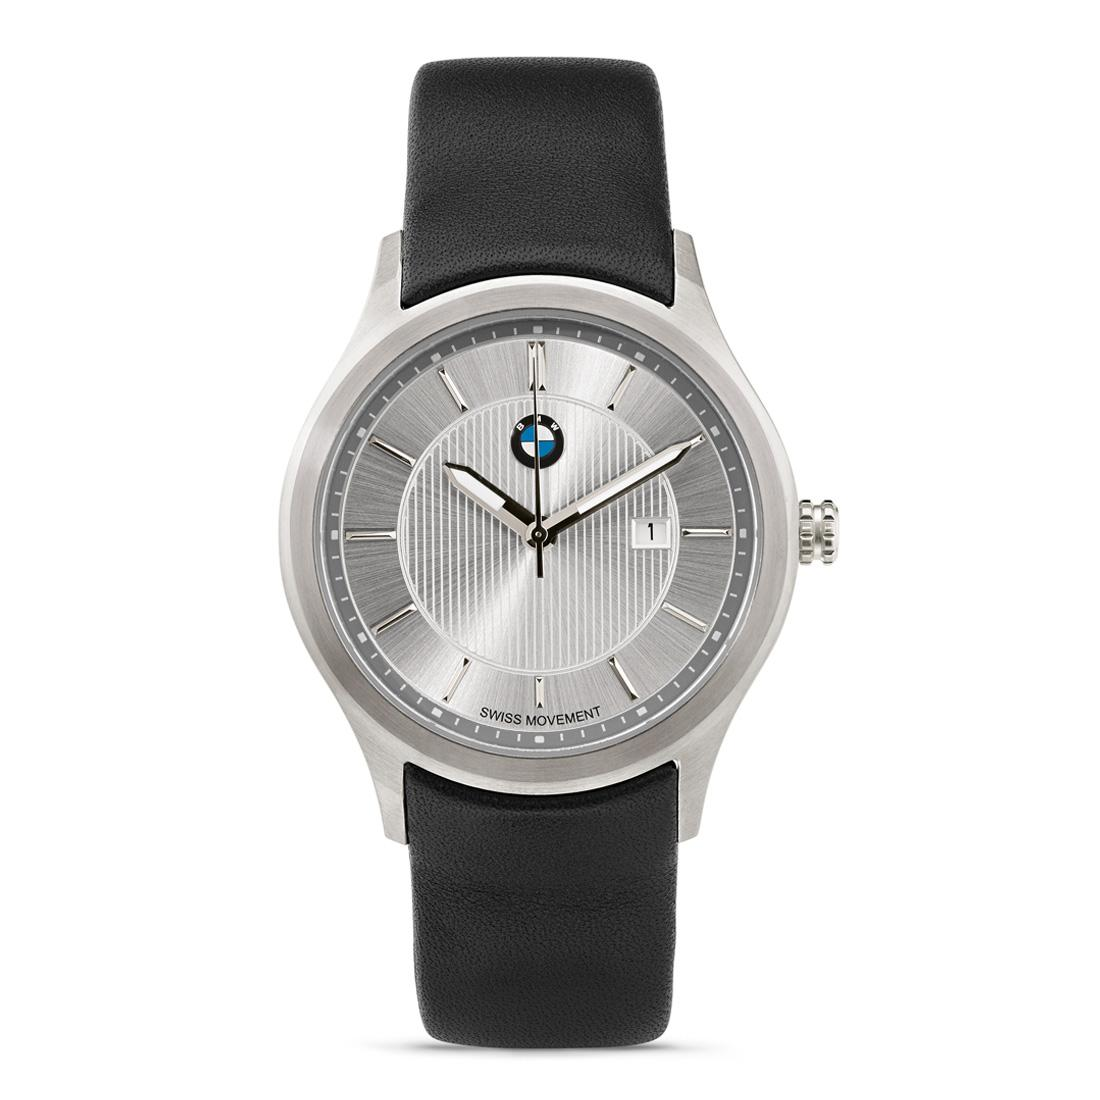 Bmw men 39 s watch for Watches for men